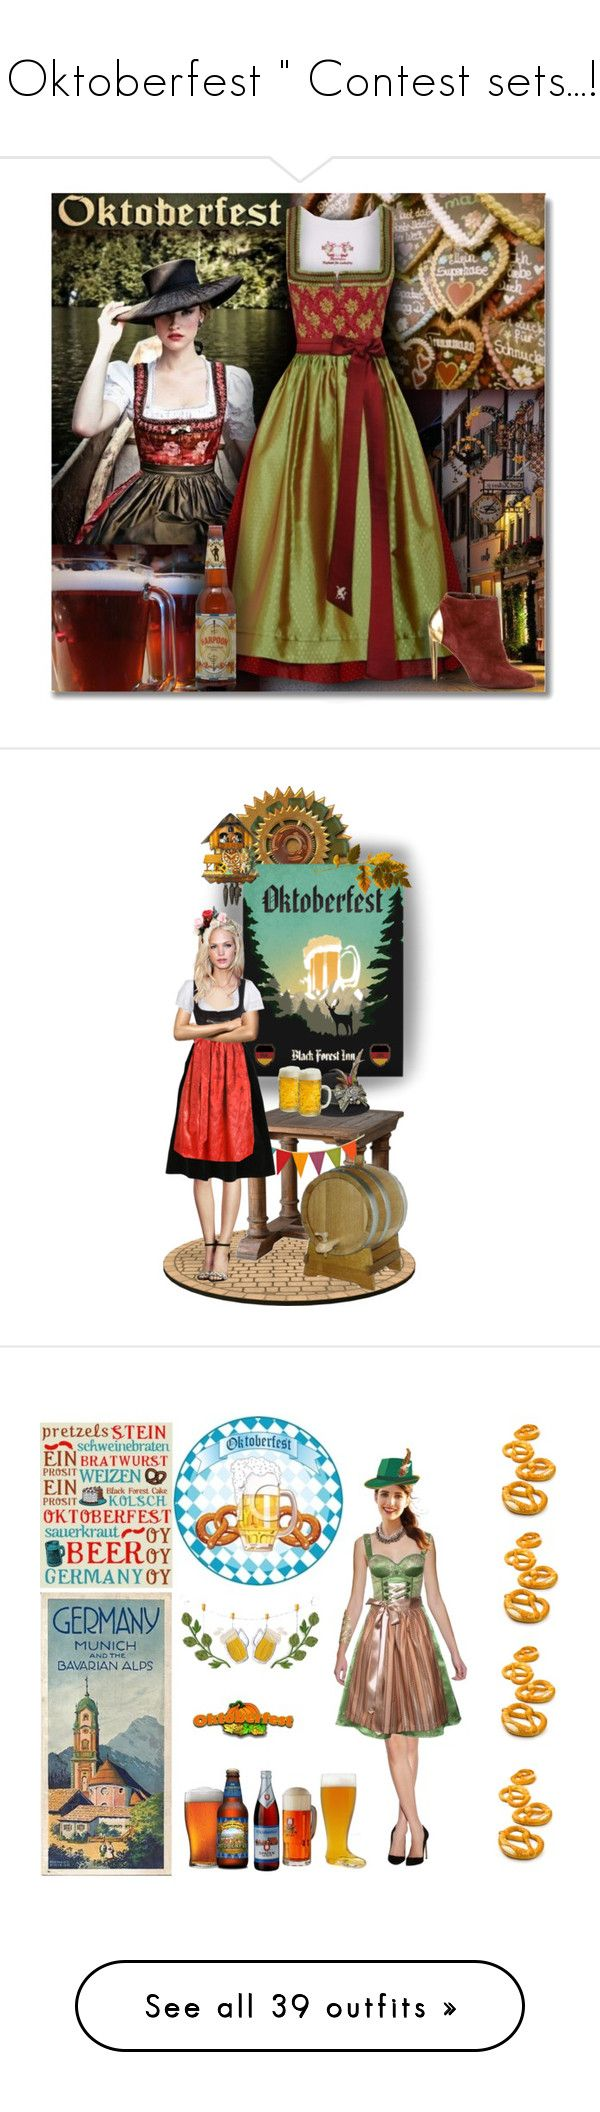 """"" Oktoberfest "" Contest sets...!!!"" by catyravenwood ❤ liked on Polyvore featuring Sportalm, Sergio Rossi, art, germany, german, oktoberfest, festival, contestentry, Vita V Home and H&M"